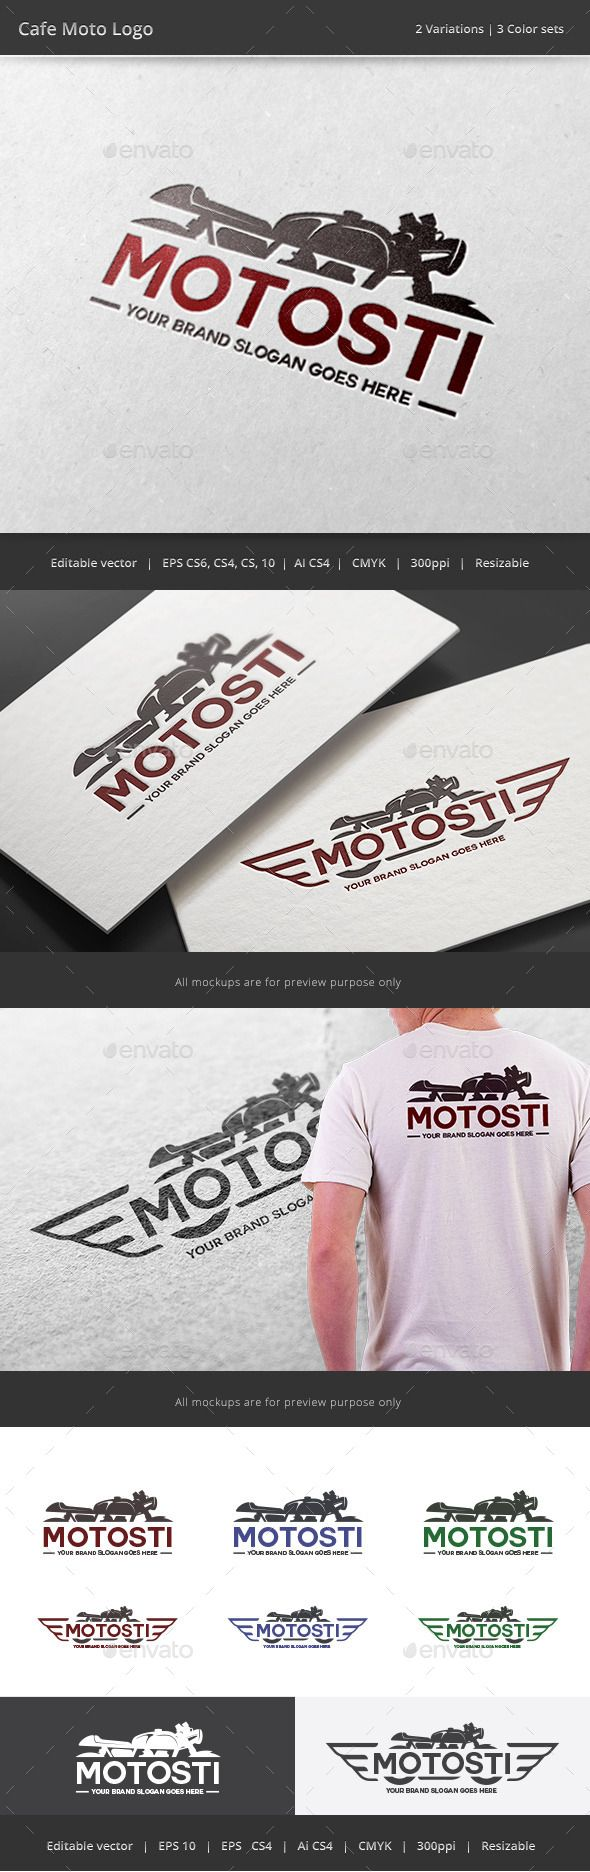 Cafe Motorcycle Logo                                                                                                                                                                                 Plus